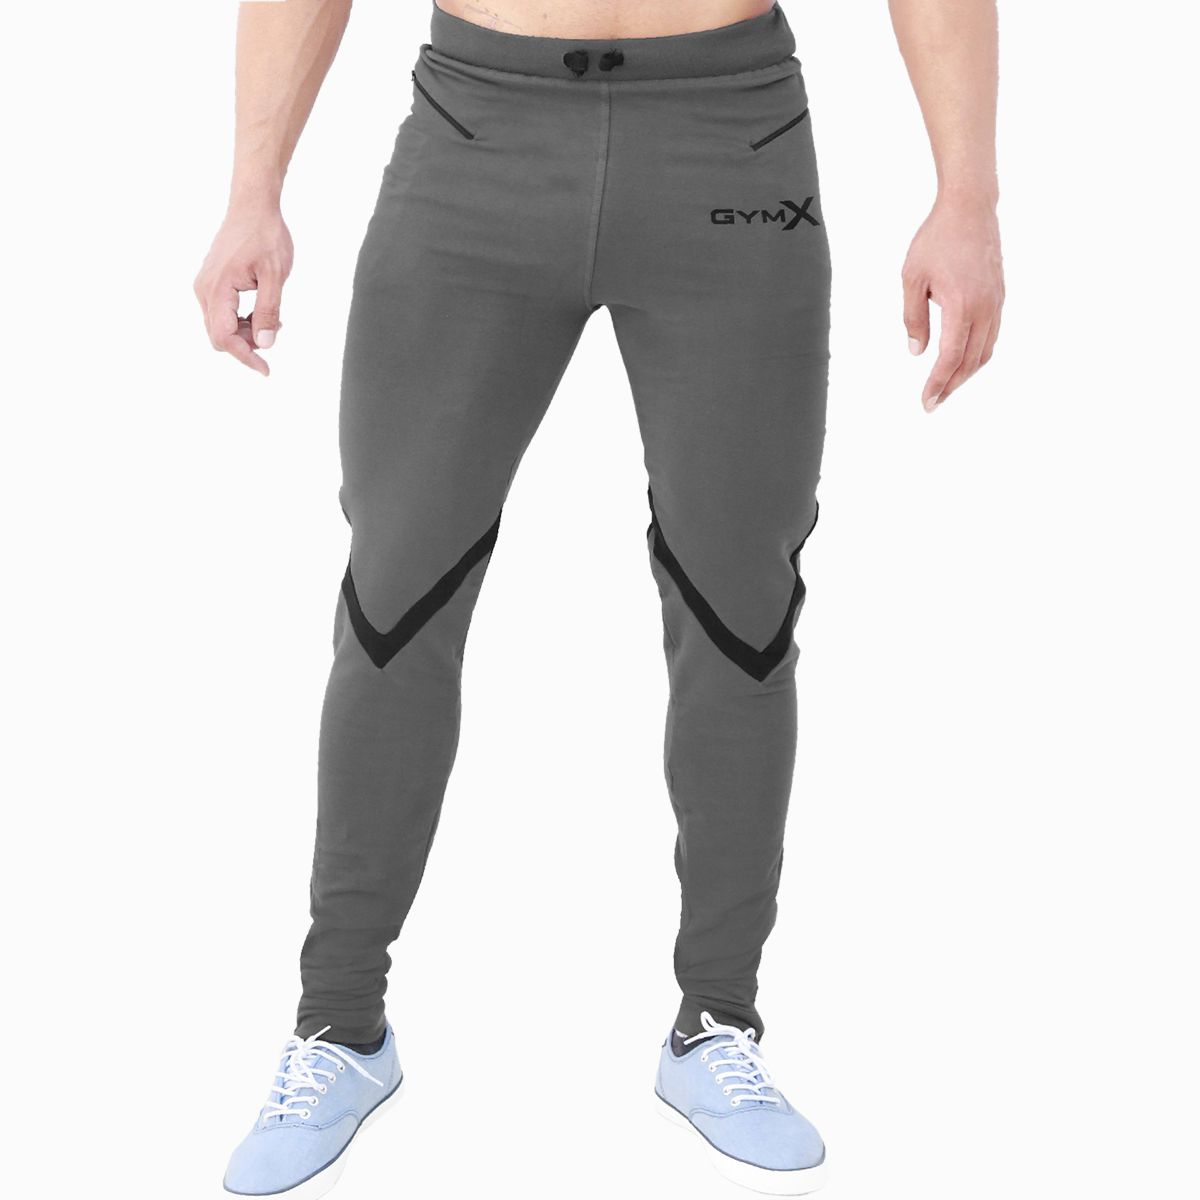 GymX Mens Valour Concrete Grey Sweatpants (Flex Fit)